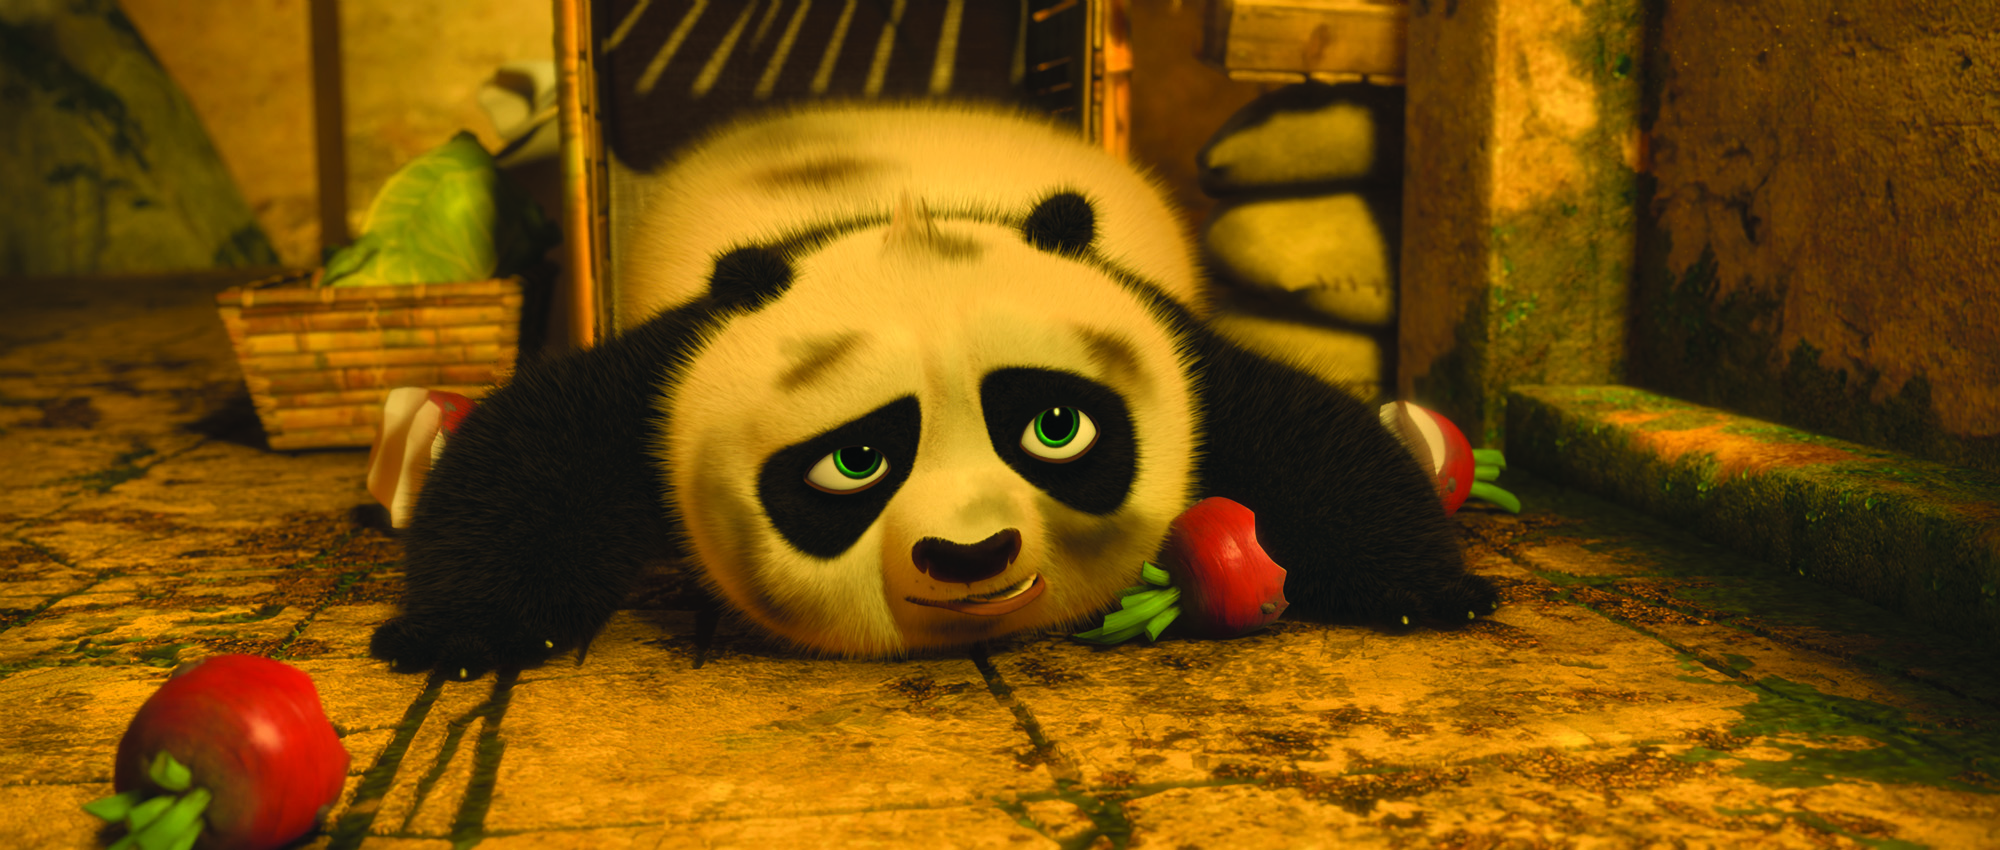 Full resolution      2 000   215  850 pixels  file size  732 KB  MIME type    Kung Fu Panda 2 Baby Po